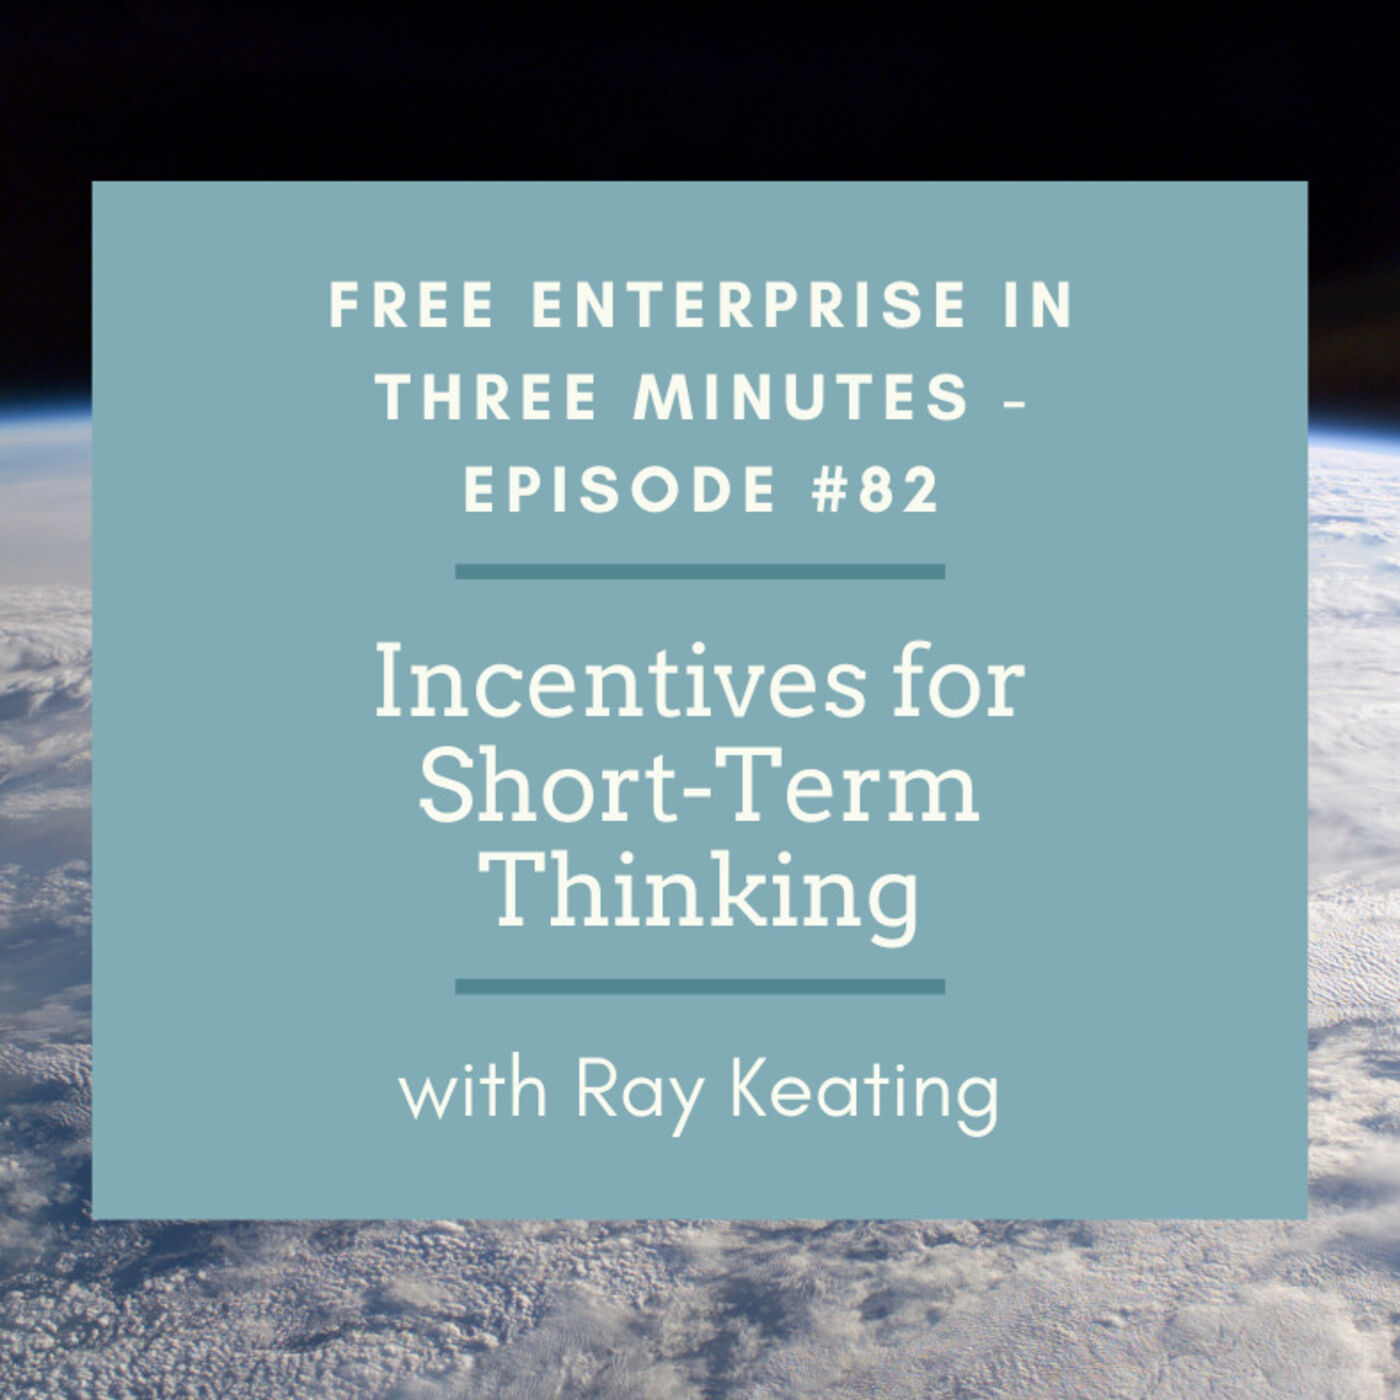 Episode #82: Incentives for Short-Term Thinking